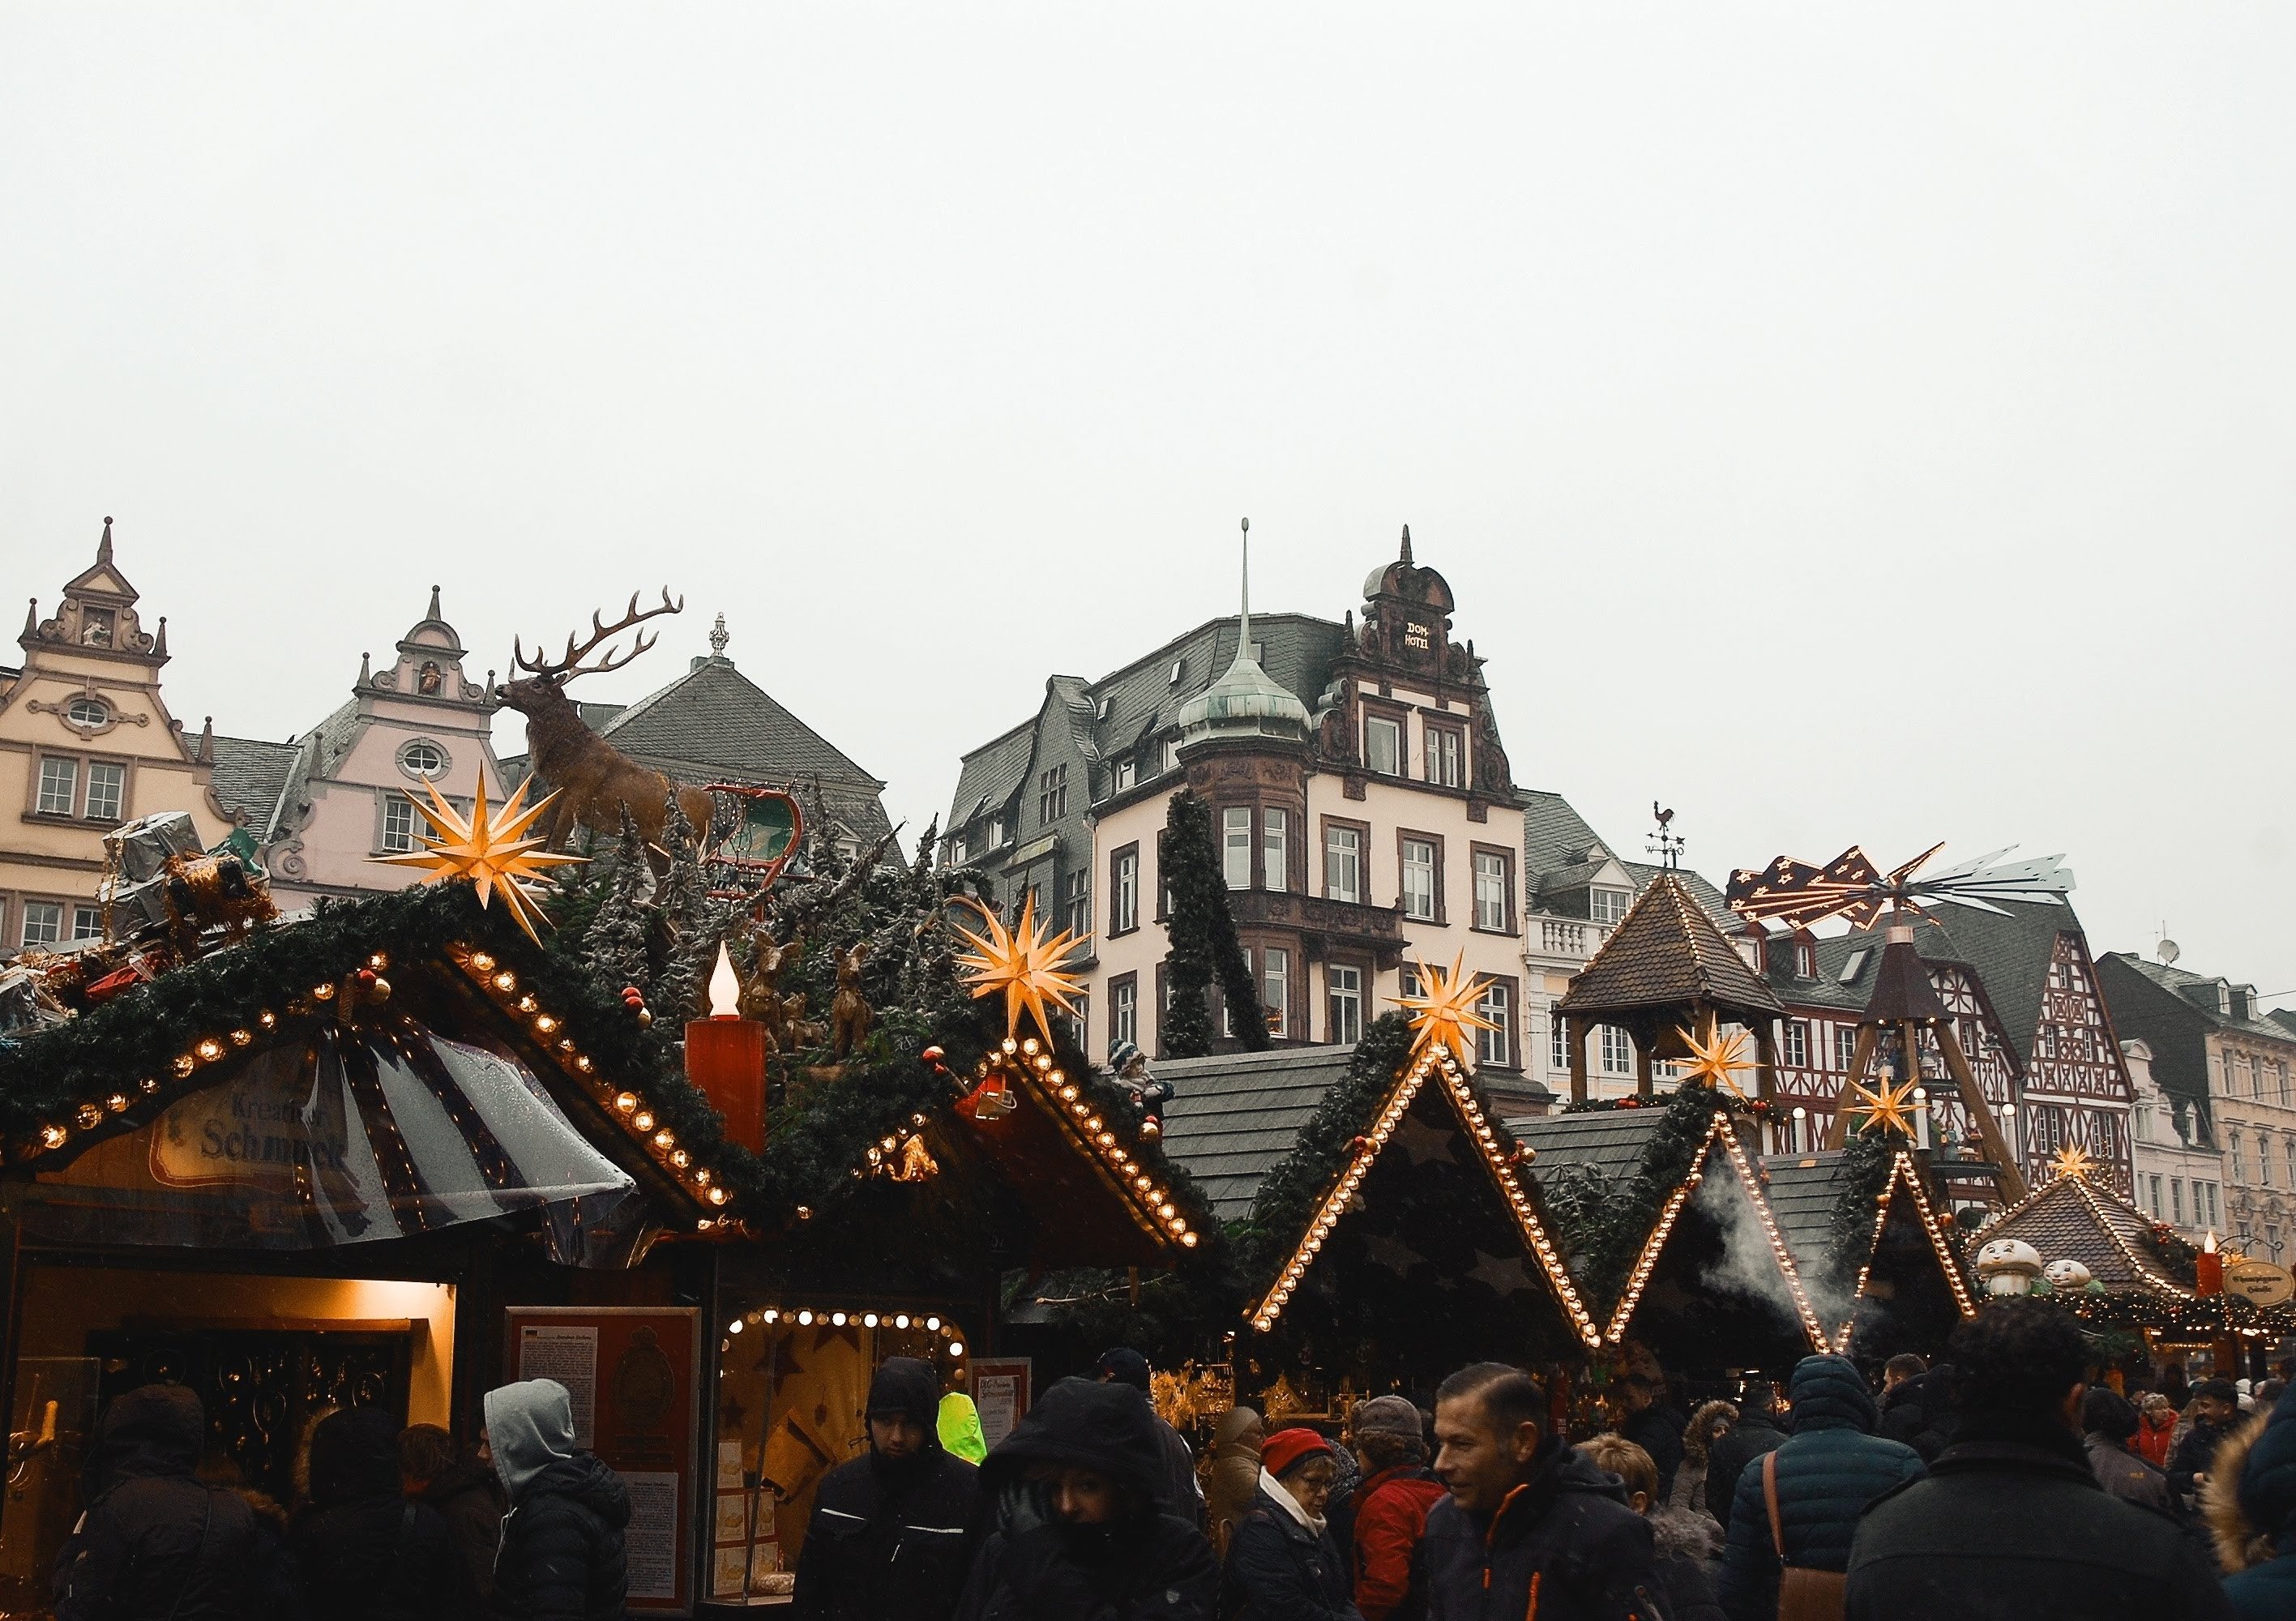 Image of Christmas market stalls in Trier, Germany